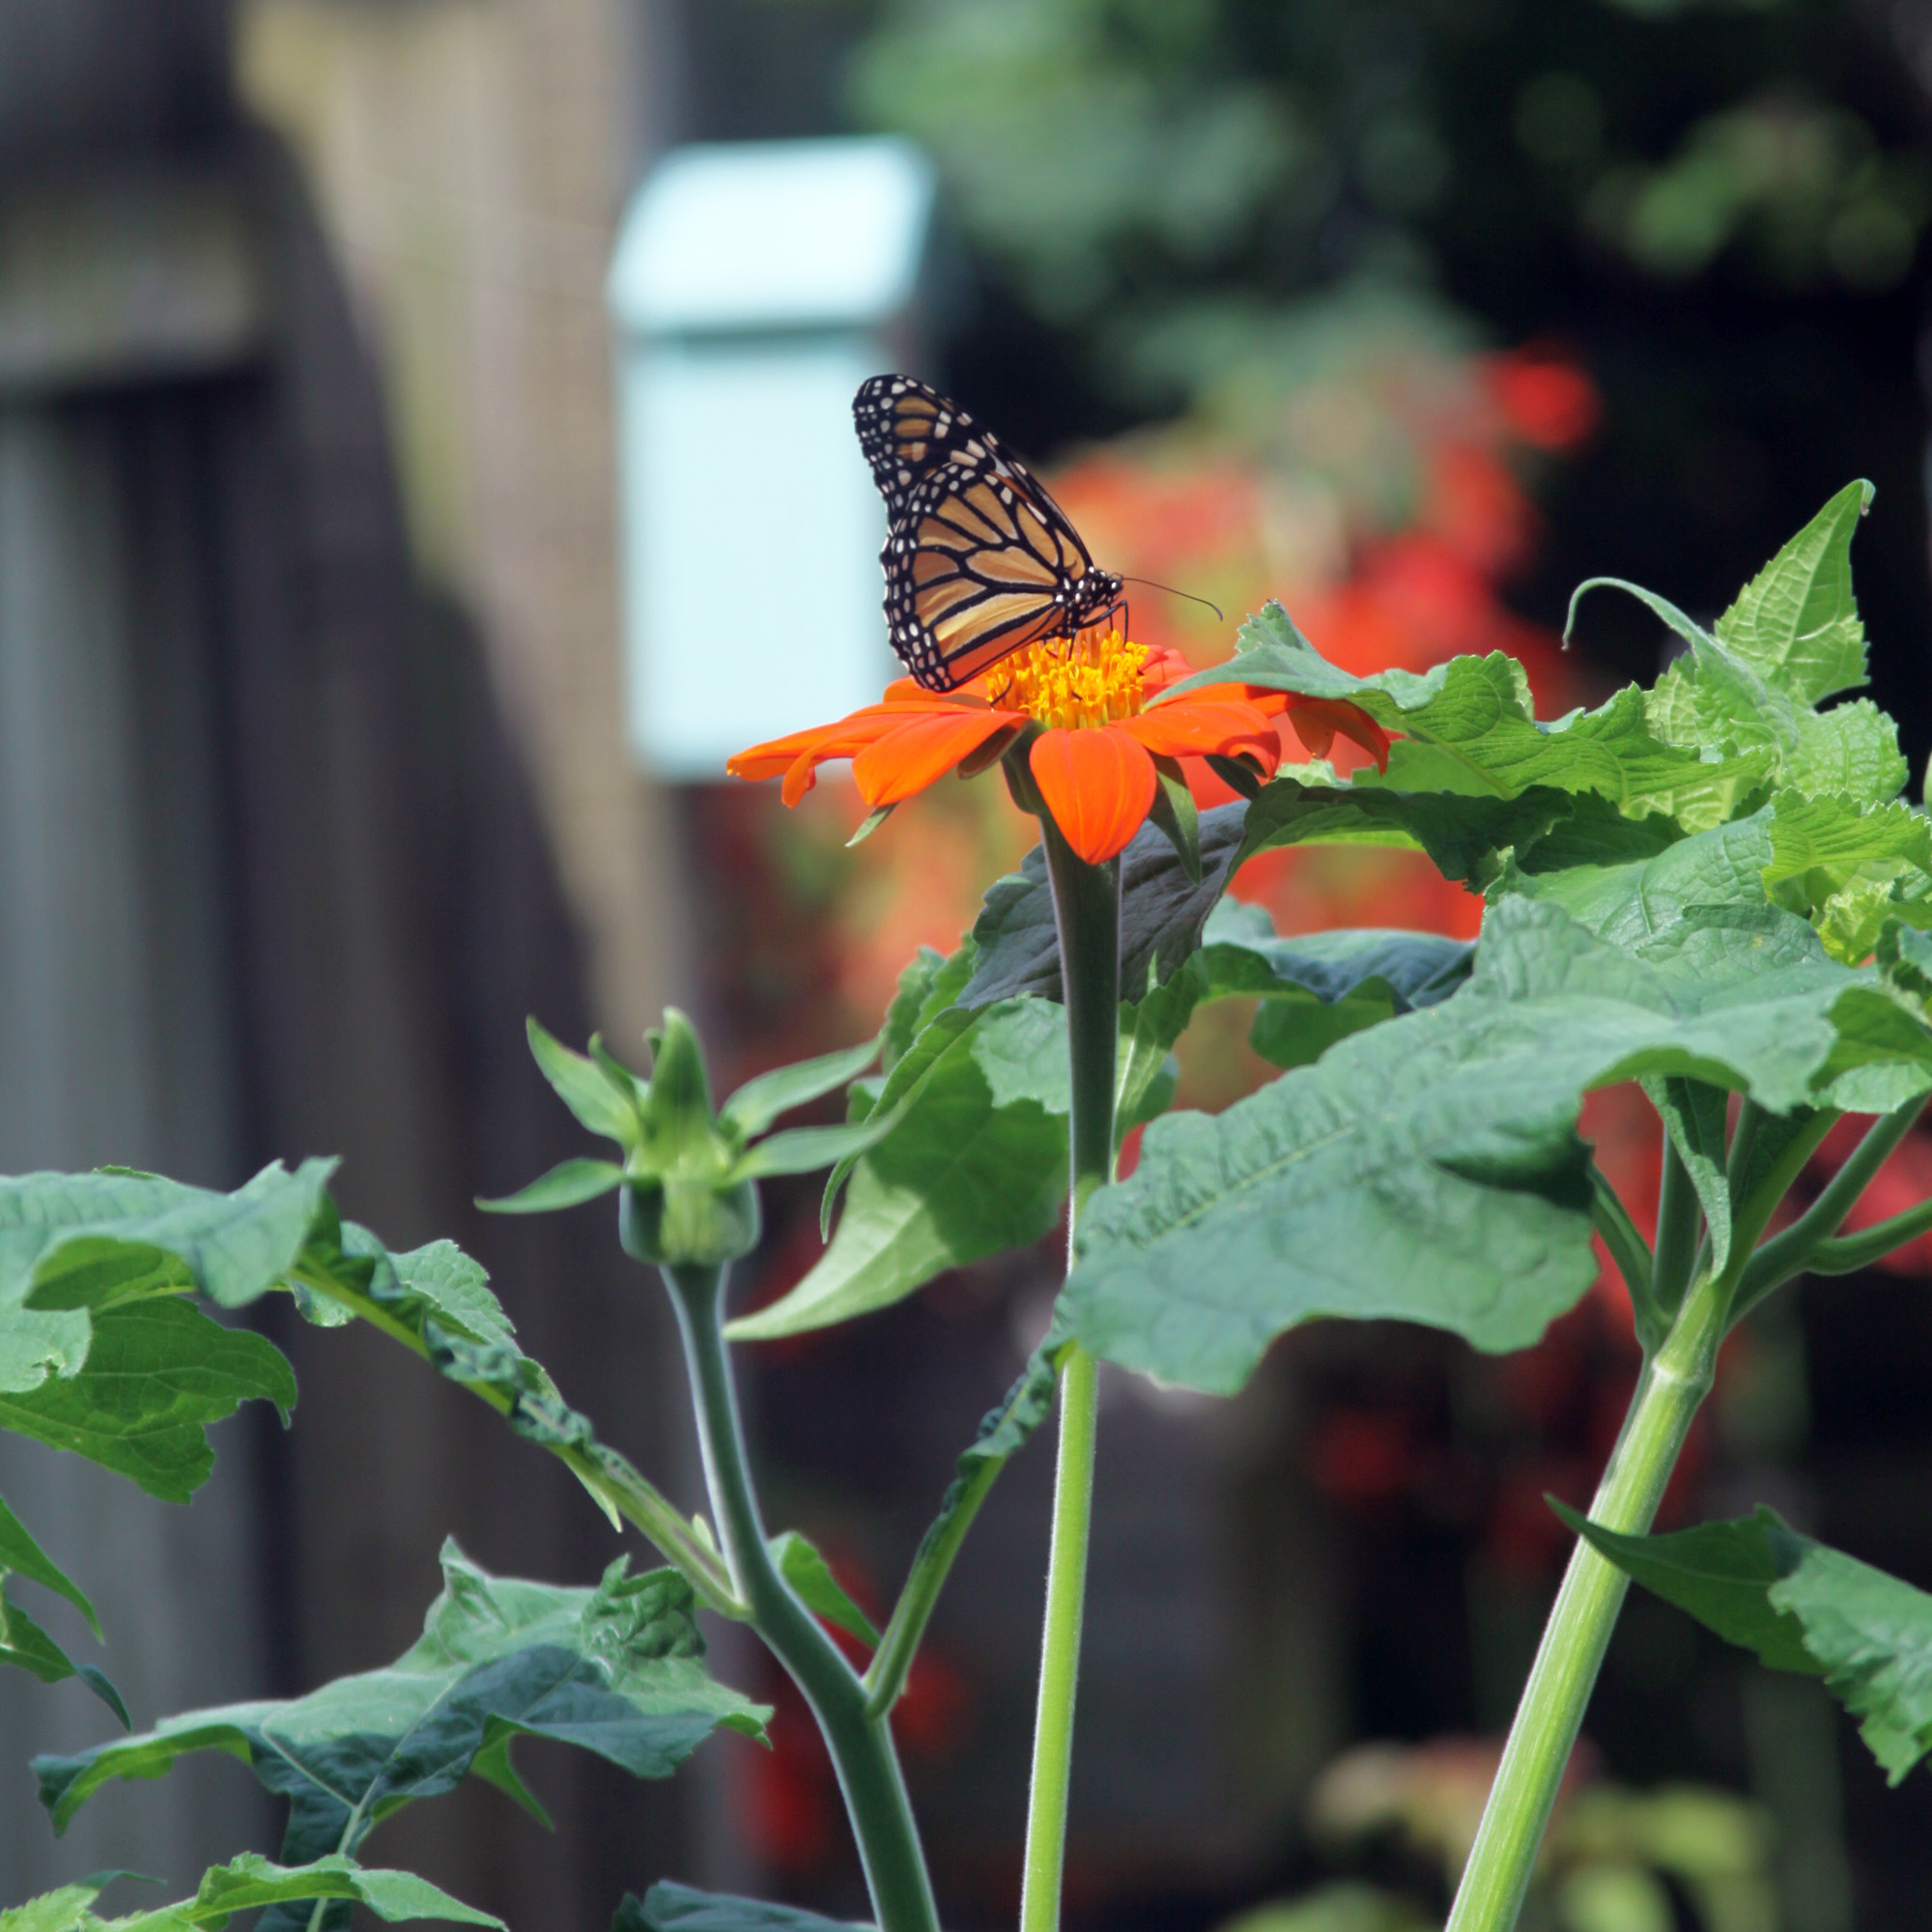 The Monarchs Love the Mexican Sunflowers Blooming in My Garden